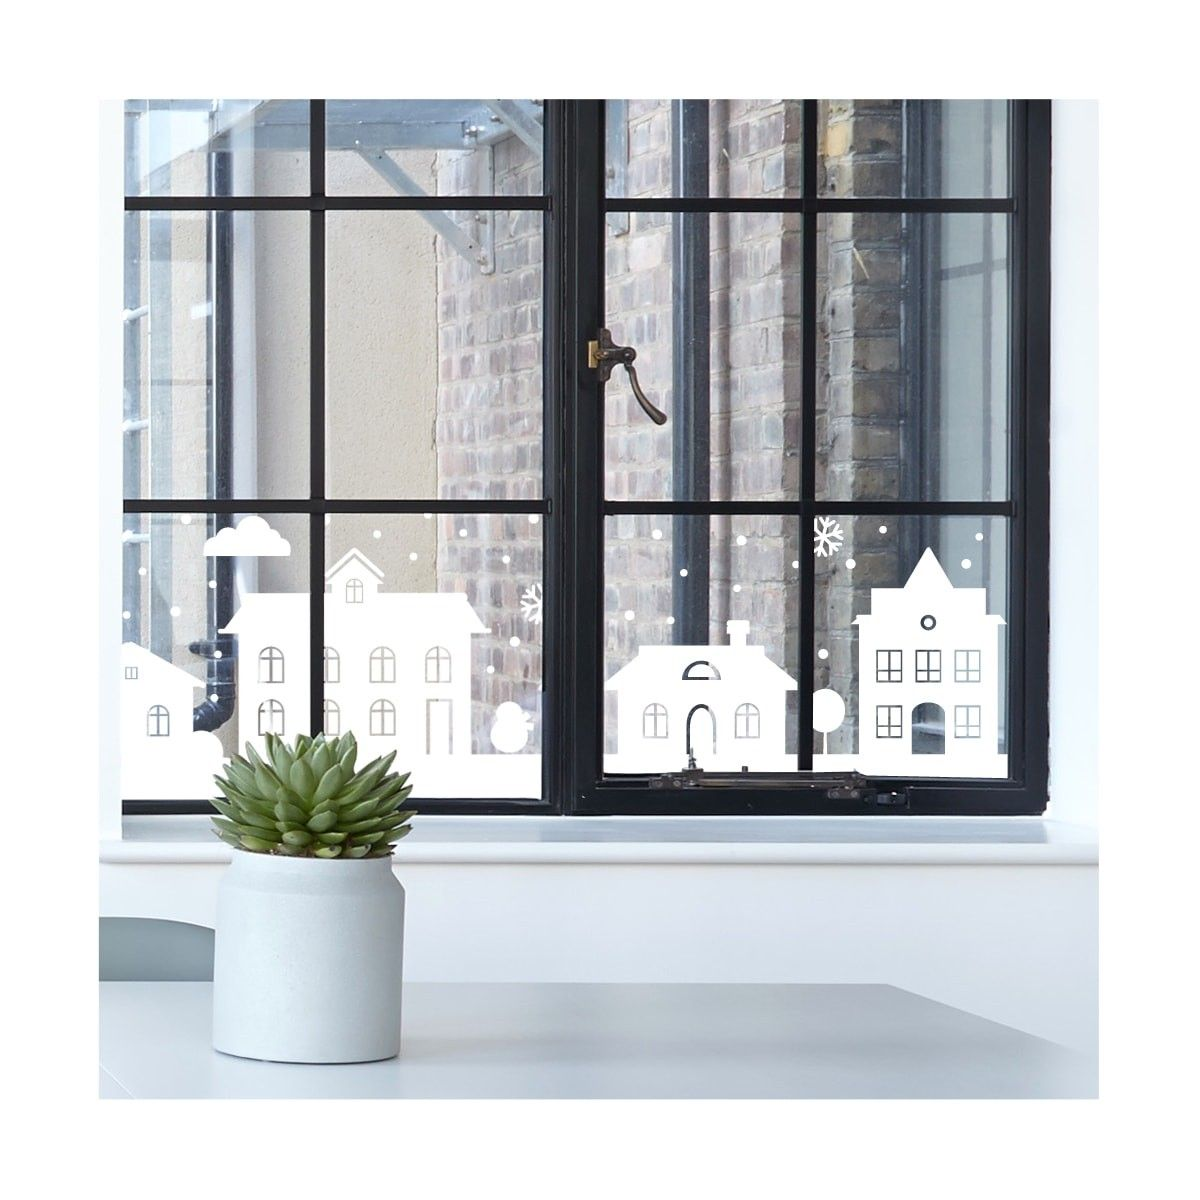 Decorative Windows For Houses Decorative Window Stickers With A Row Of Houses Kerstversiering